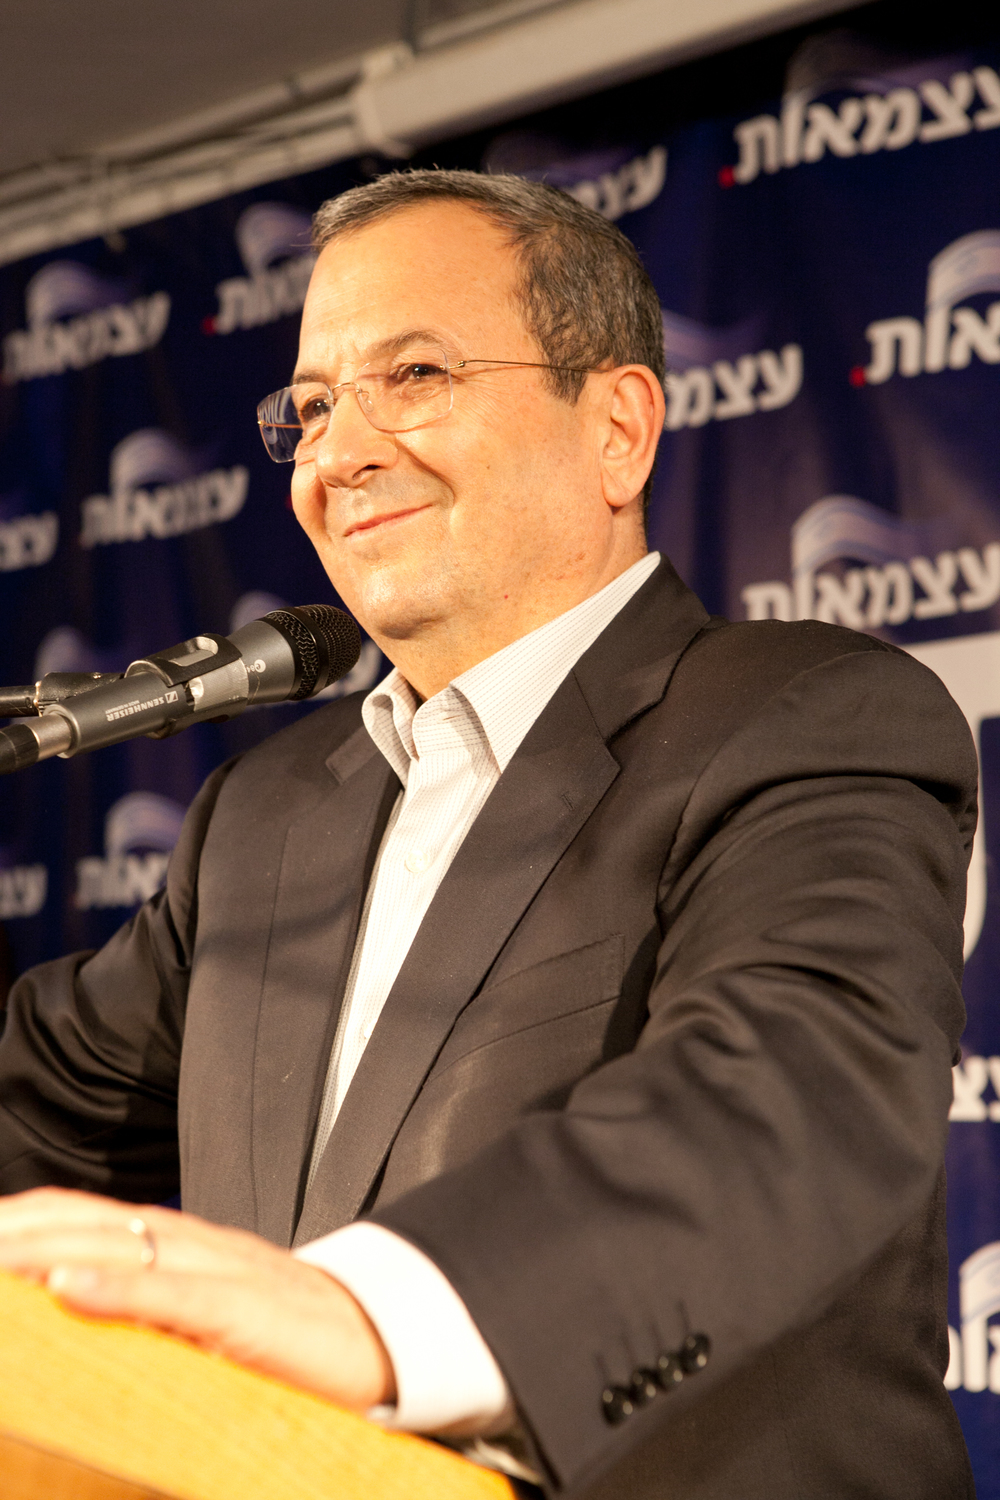 Former Israeli defense minister Ehud Barak (pictured) says in recently leaked recordings that Prime Minister Benjamin Netanyahu and former foreign minister Avigdor Lieberman were blocked from taking military action against Iranian nuclear facilities in 2010, 2011, and 2012. Credit: Barak Weizmann.